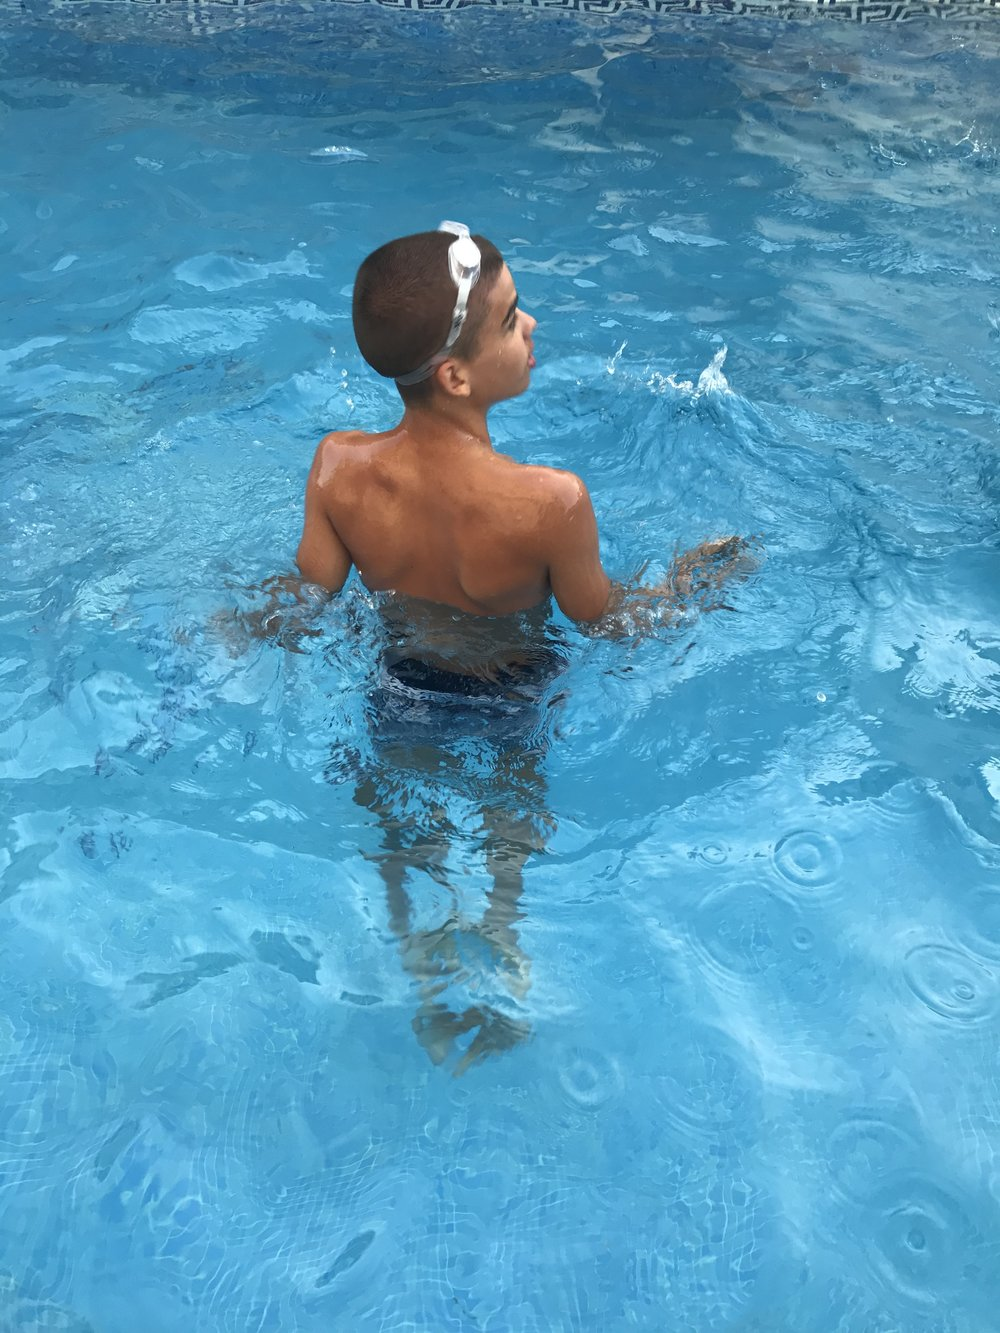 Refreshing moment in the swimming pool